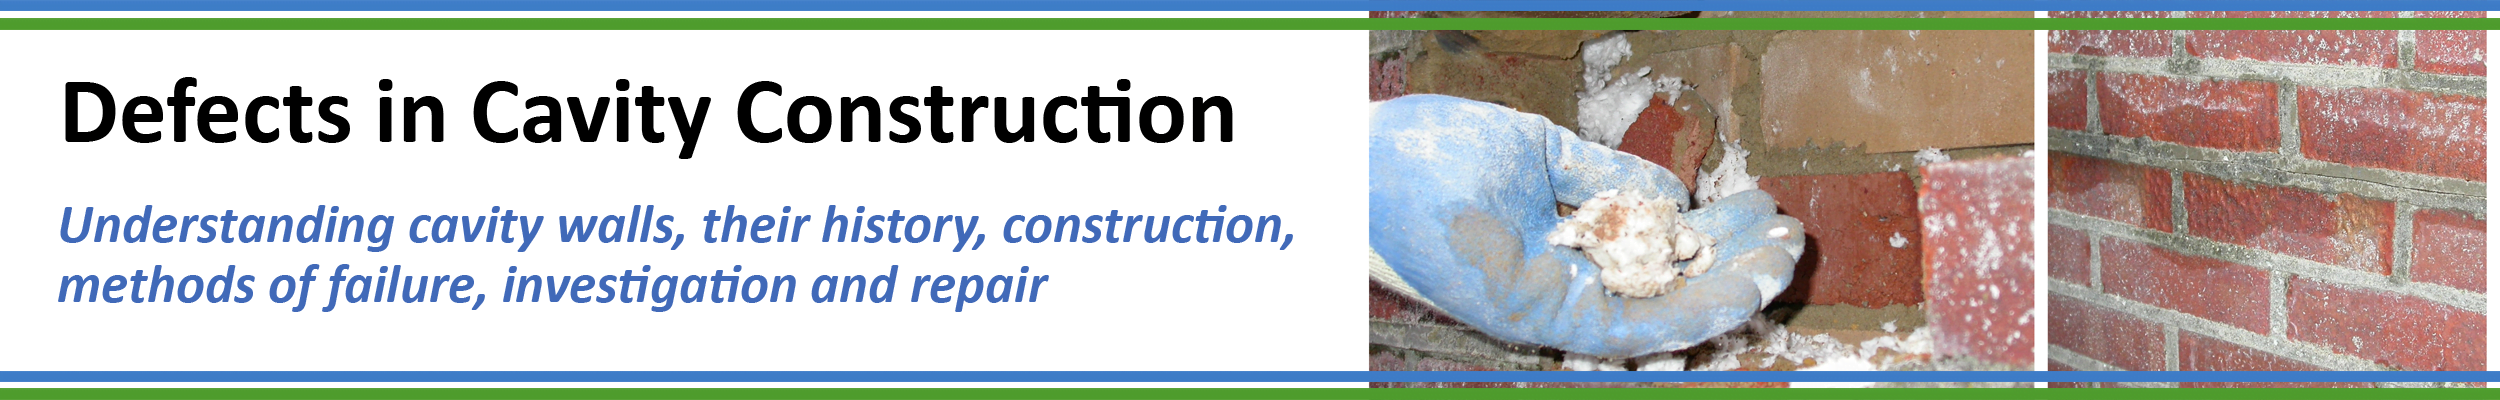 Defects in Cavity Construction